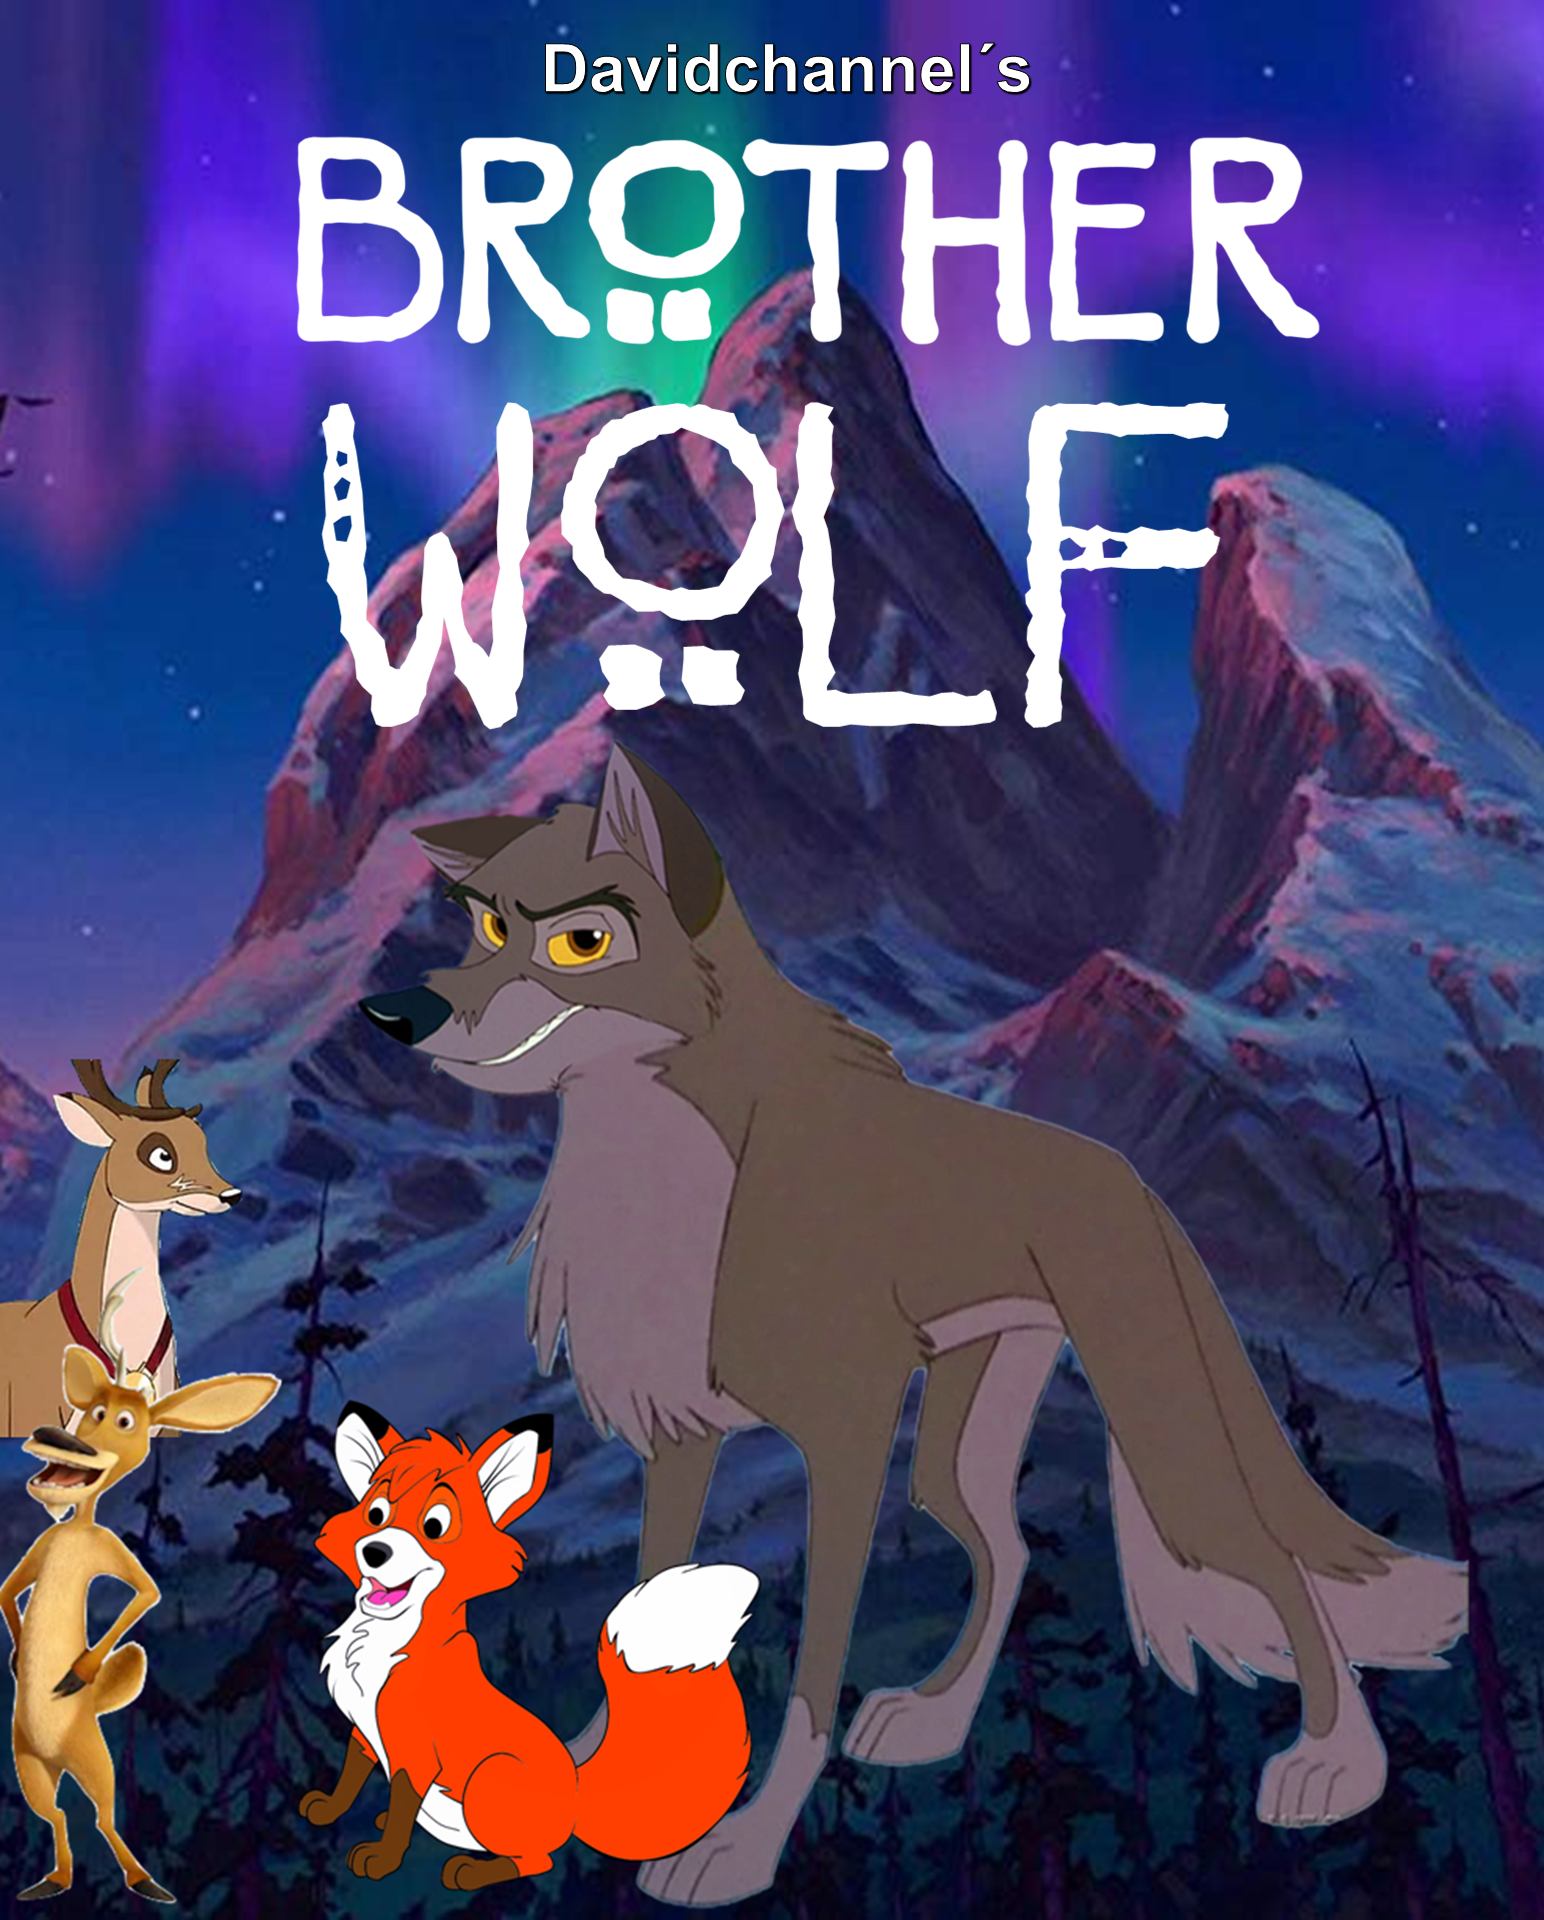 Brother Wolf (Davidchannel Version)